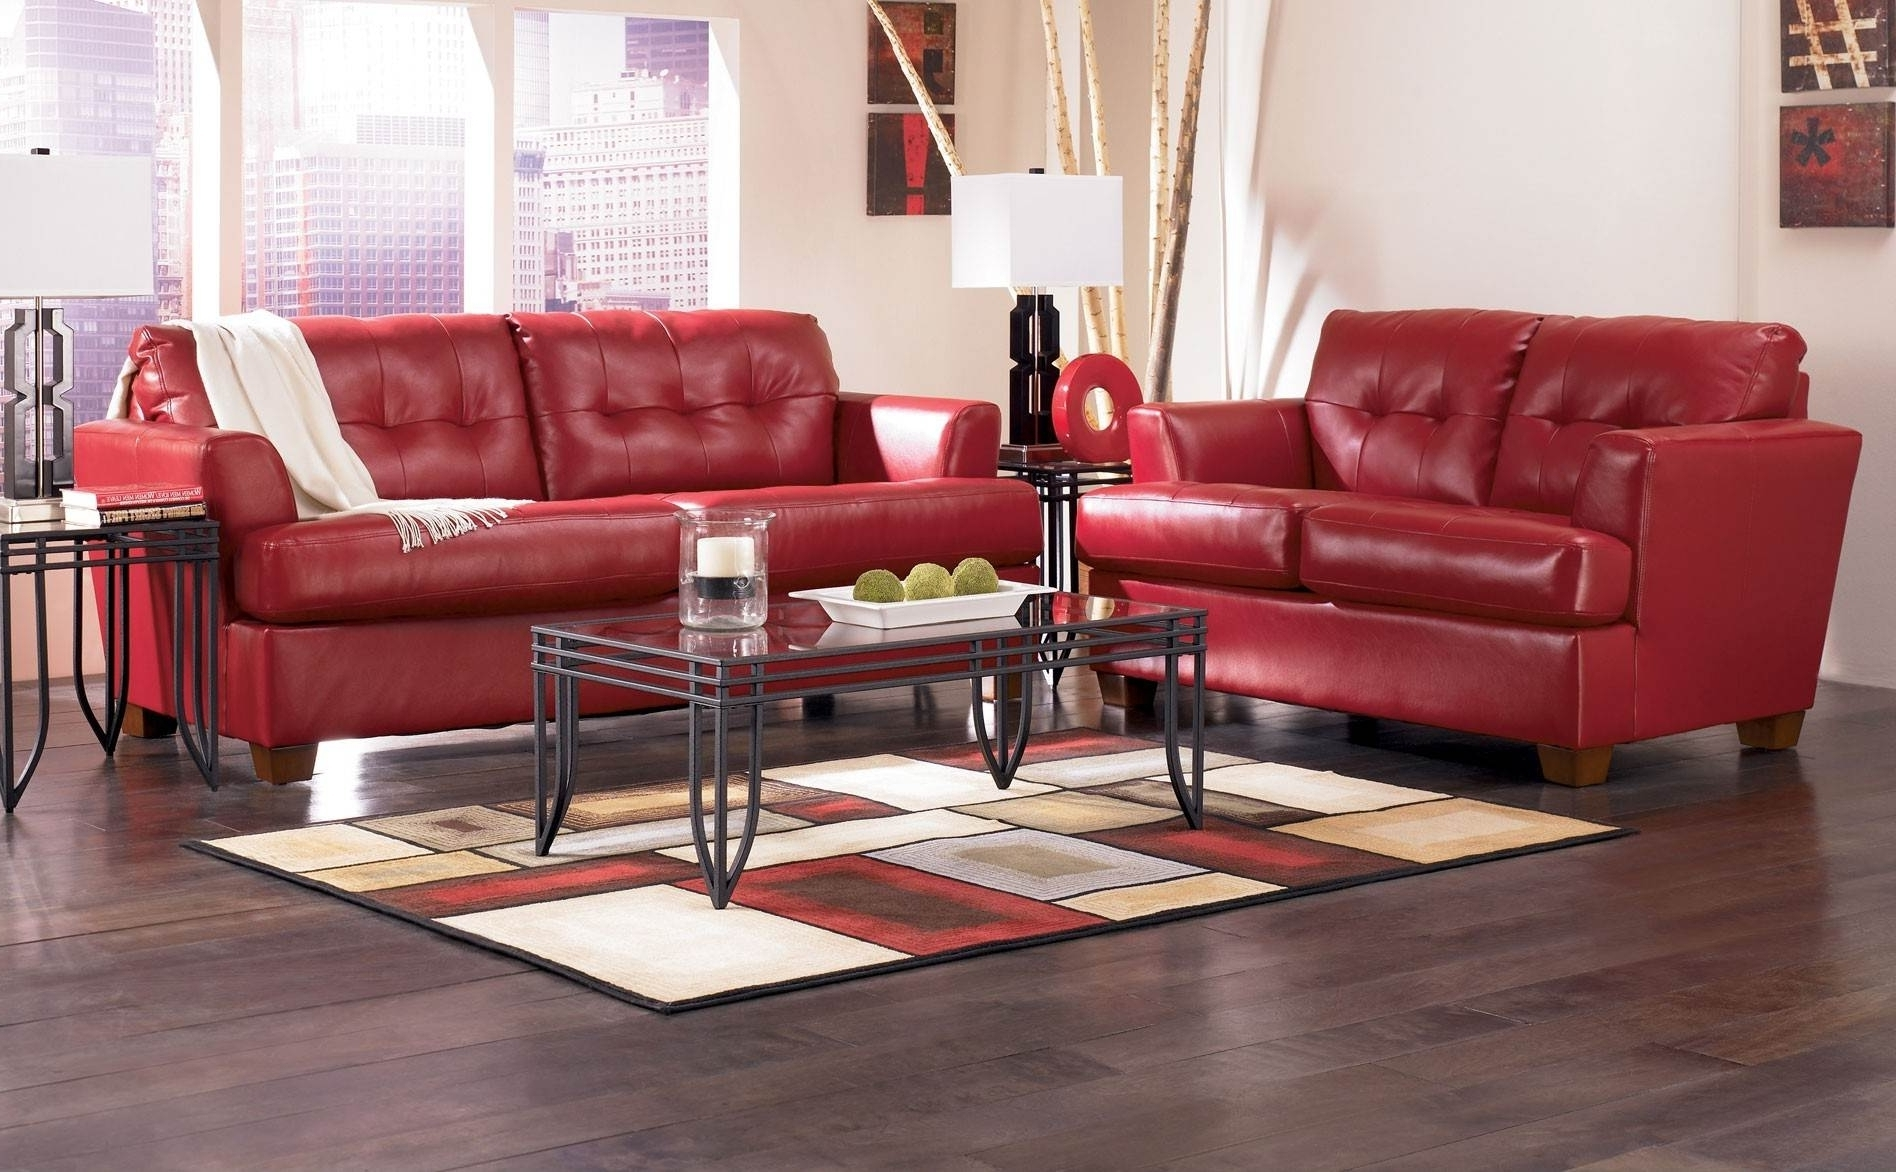 Red Leather Couches For Living Room Within Best And Newest Living Room Decorating Ideas With Red Leather Couch (View 18 of 20)